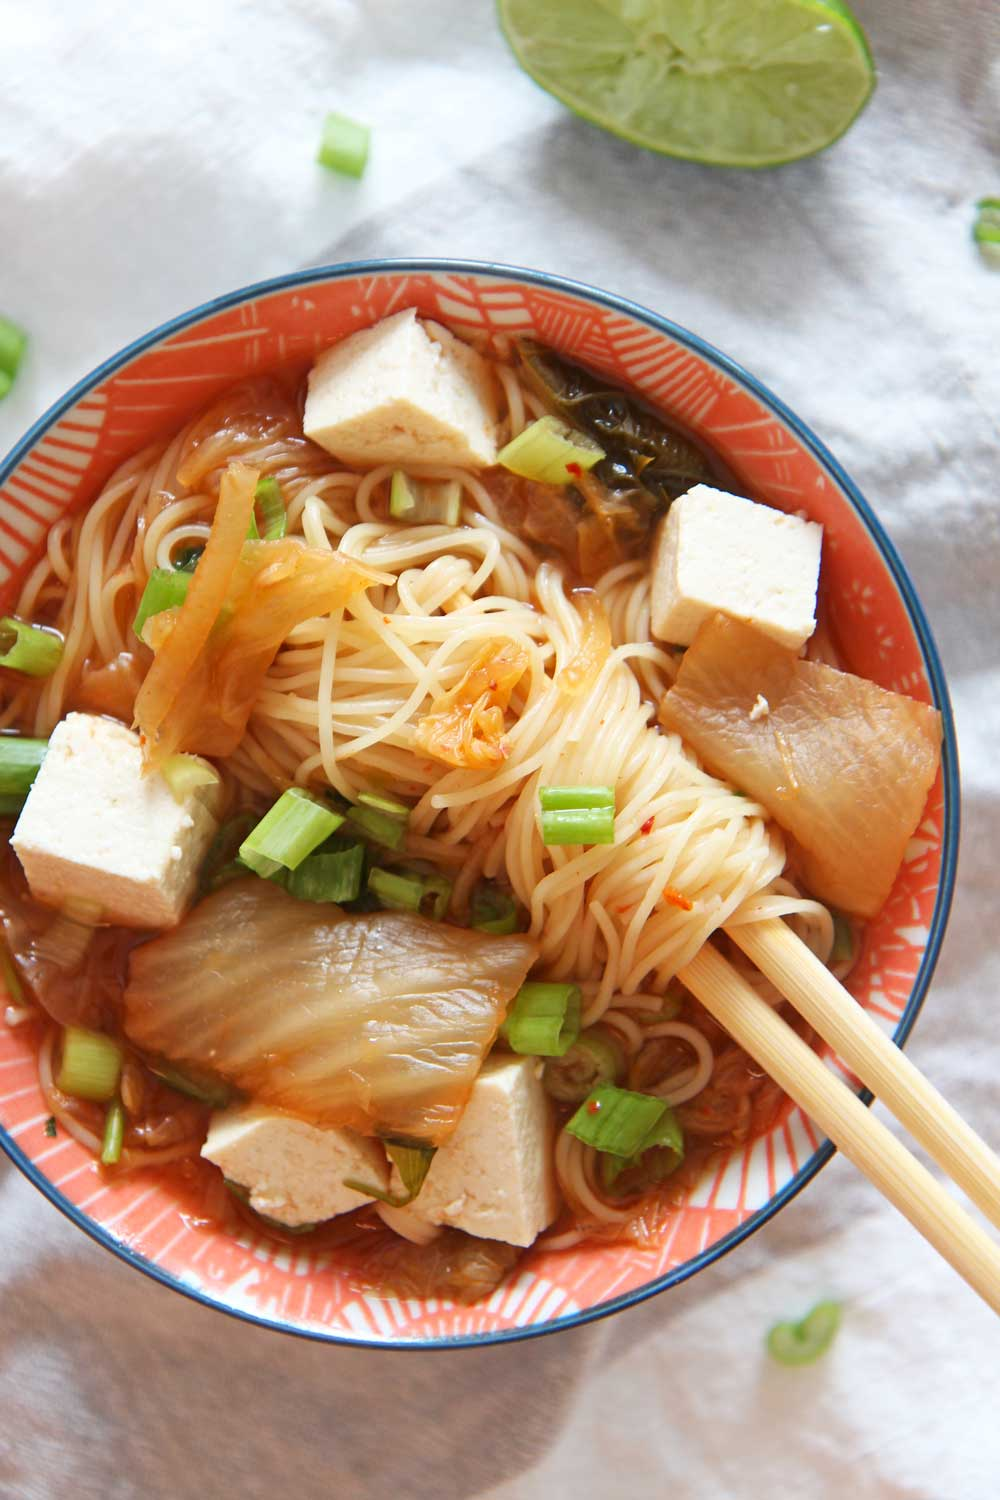 How to Make Kimchi Ramen Soup in a Slow Cooker. Grab noodles, tofu, kimchi, and scallions. Perfect soup that is all done in the crock pot. Happy Cooking! www.ChopHappy.com #souprecipe #ramenrecipe